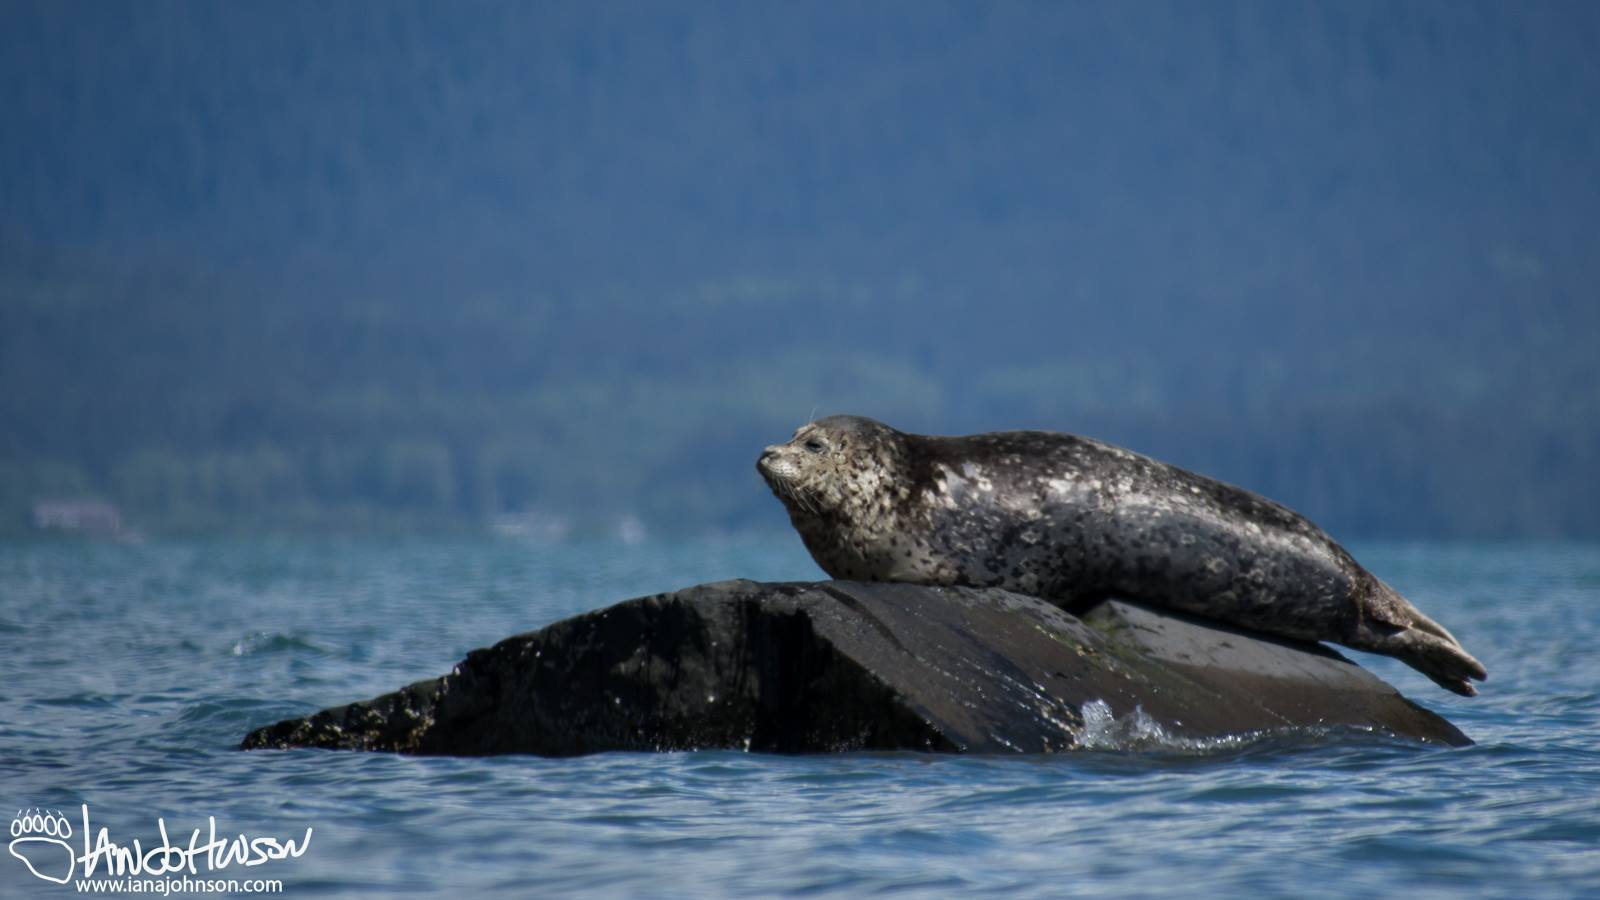 A HARBOR SEAL RESTS ON A ROCK. THEY ARE REGULARLY VISITORS TO THE WATERS AROUND CRAIG AND NEAR COFFMAN COVE, AND AT NOYES ISLAND TO THE WEST OF PRINCE OF WALES ISLAND. IMAGE COURTESY OF IAN A. JOHNSON, WILDLIFE PHOTOGRAPHY.